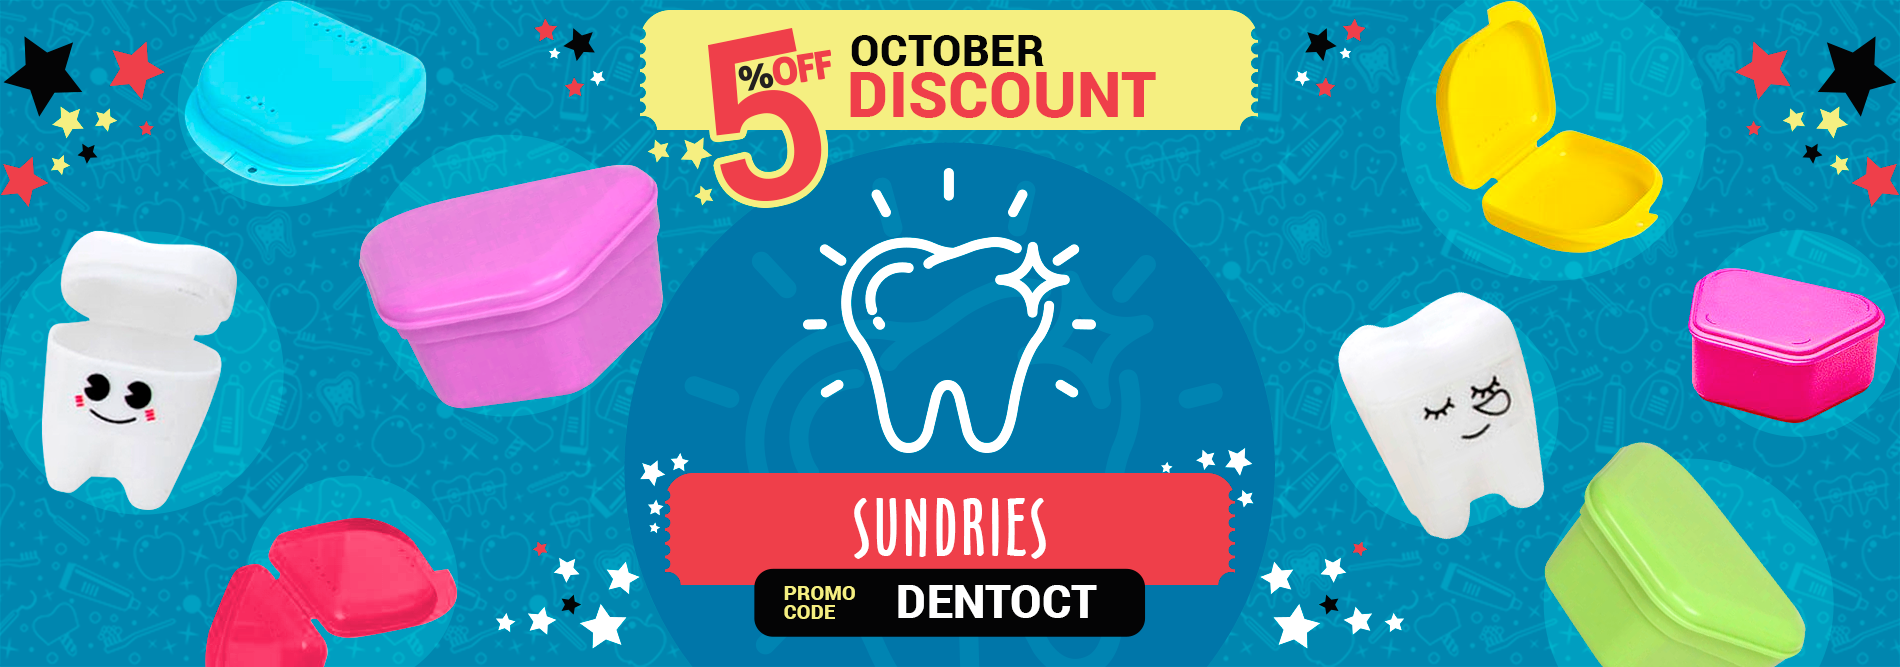 Monthly Promotion - Sundries